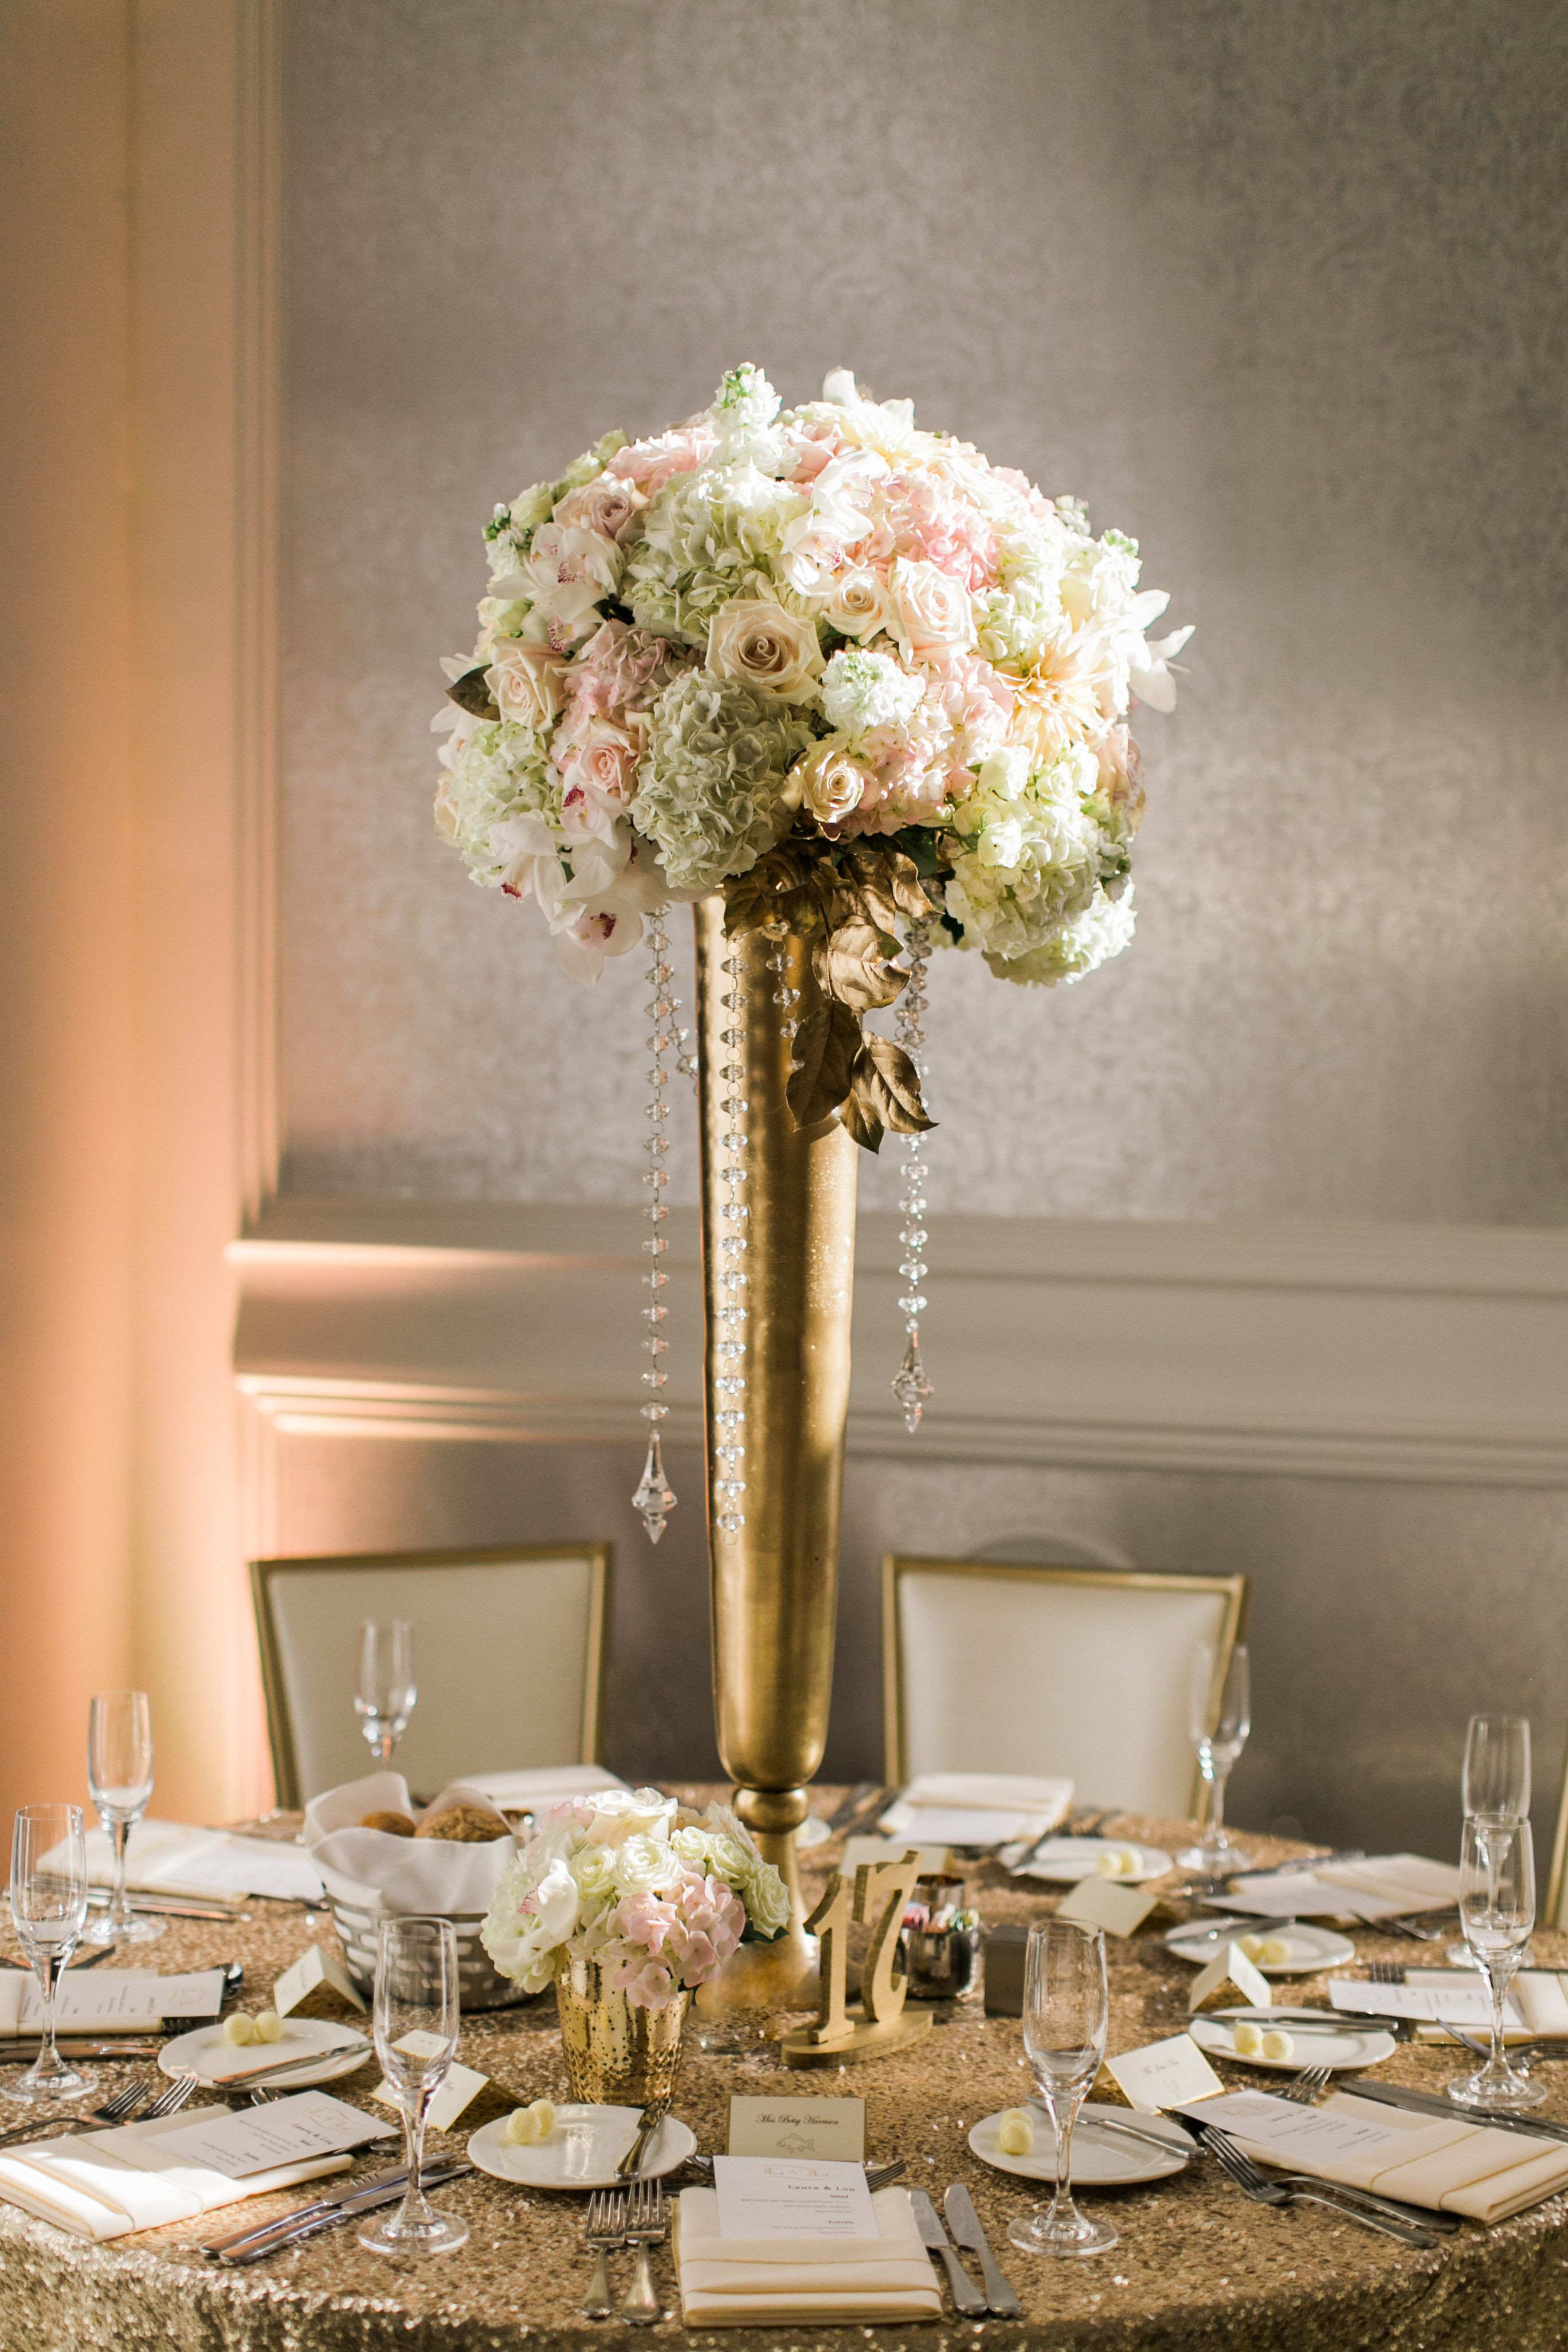 21 Stunning Cheap Gold Vases for Centerpieces